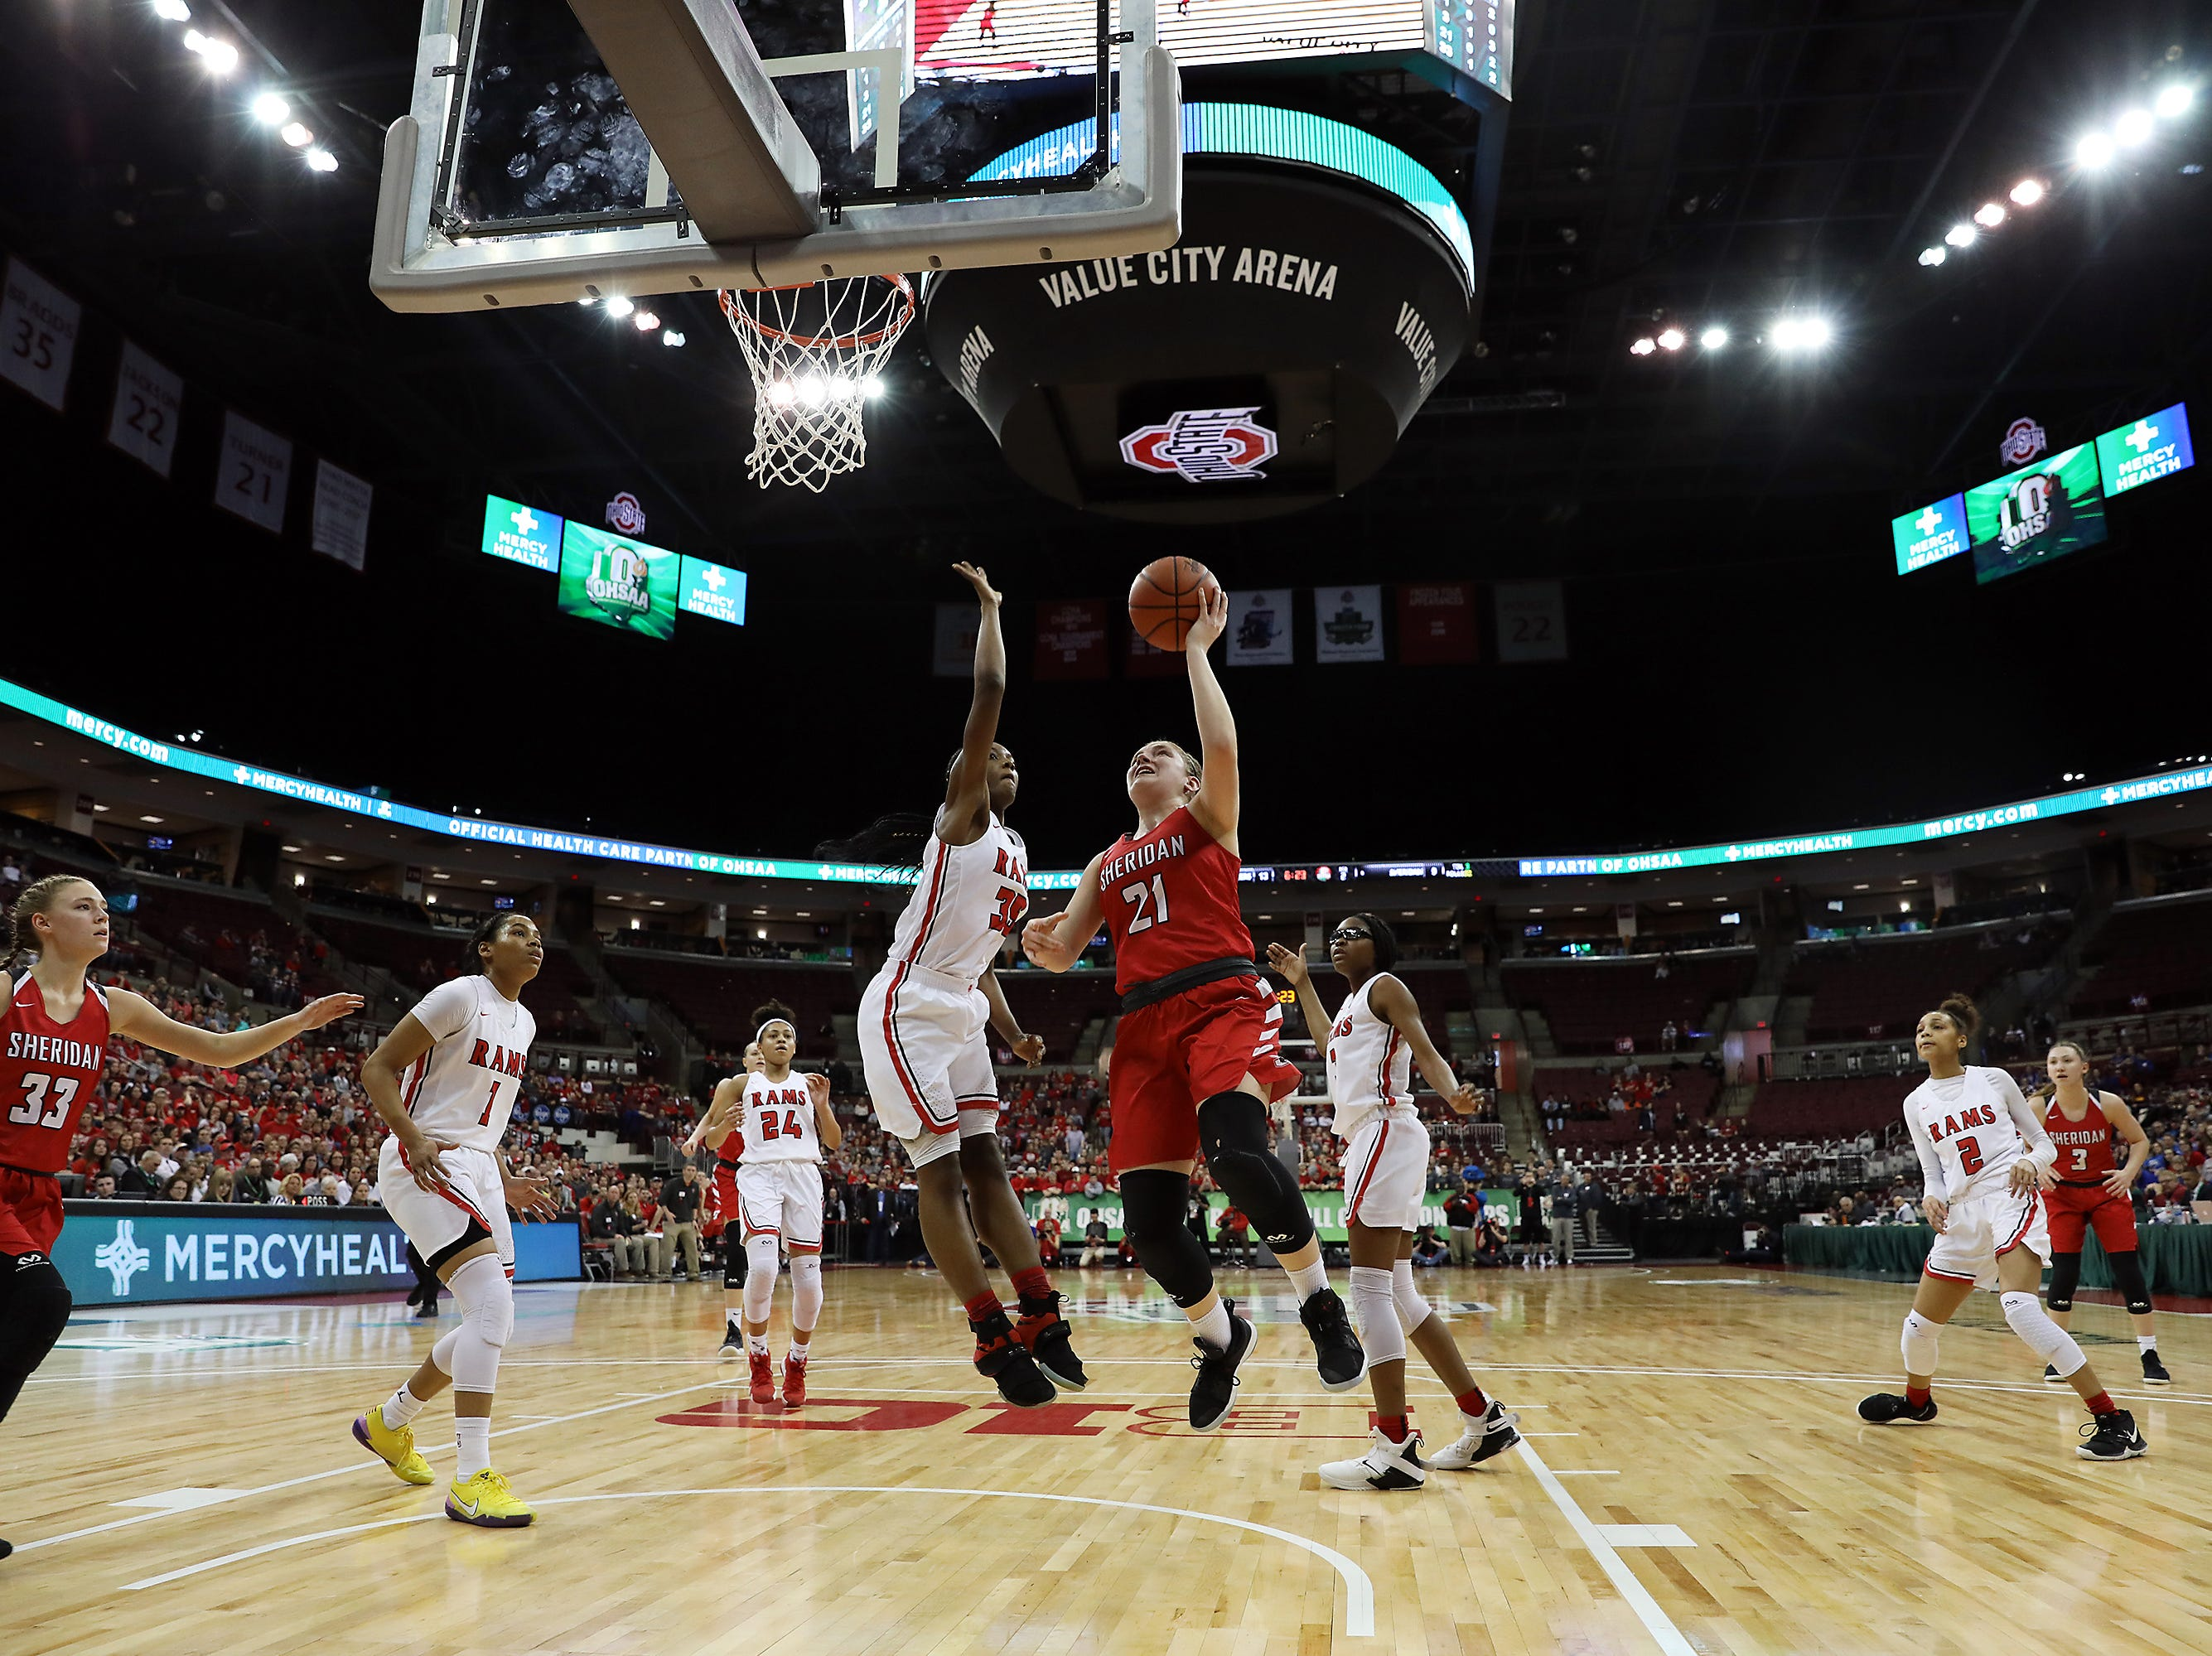 Sheridan's Kendyl Mick puts up a shot against Toledo Rogers during the DII state semis in Columbus on Thursday.